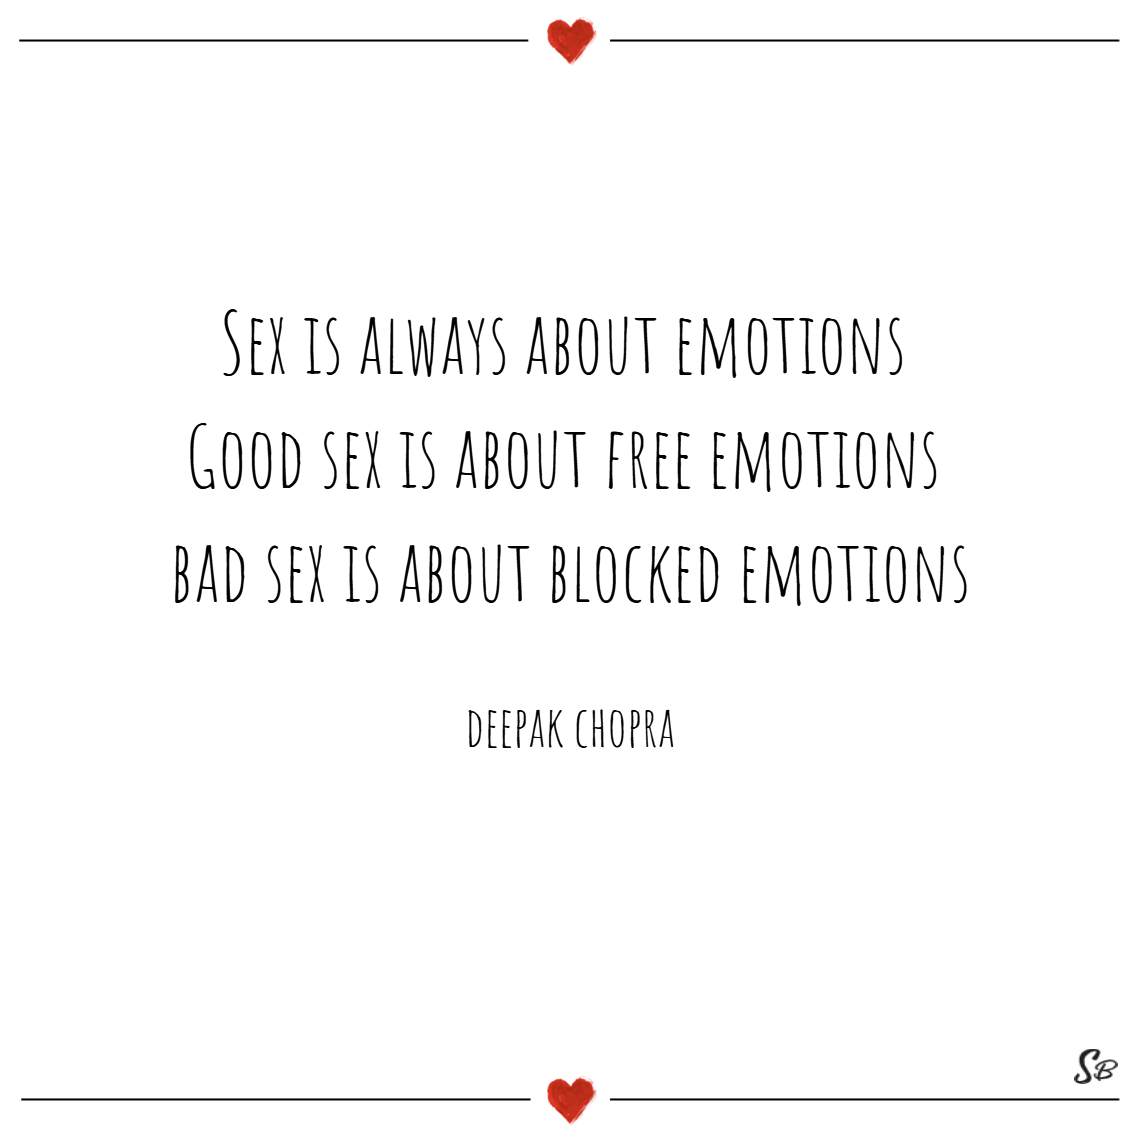 Sex is always about emotions. good sex is about free emotions; bad sex is about blocked emotions. – deepak chopra